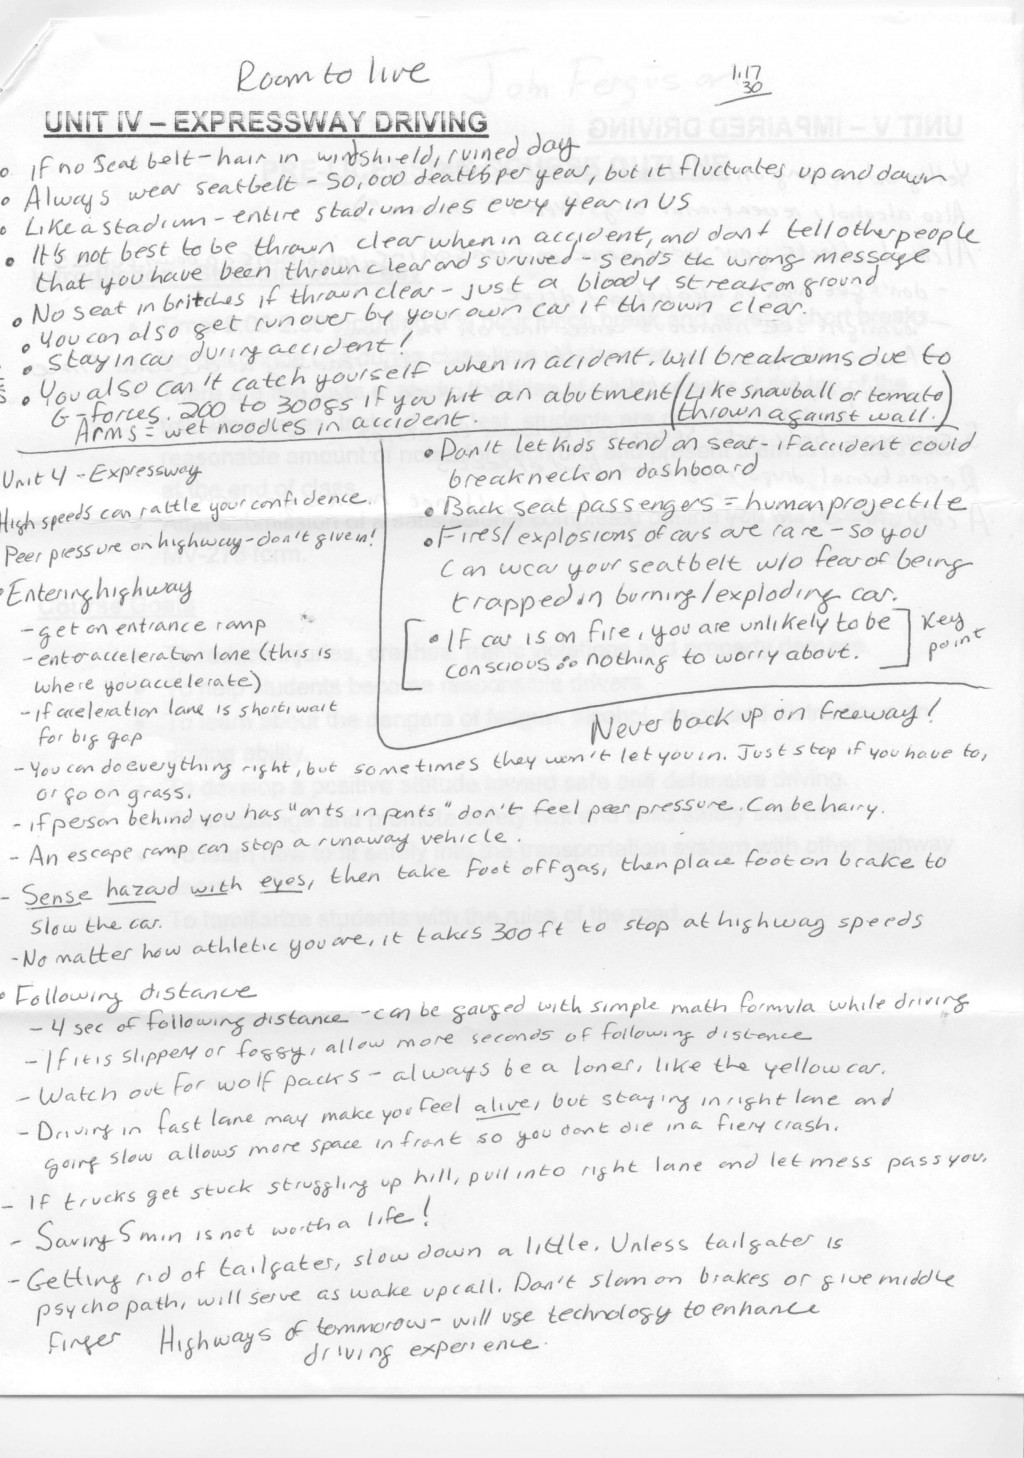 004 Teenage Driving Essay Unit Awesome Accidents Dangers Of Drunk Large